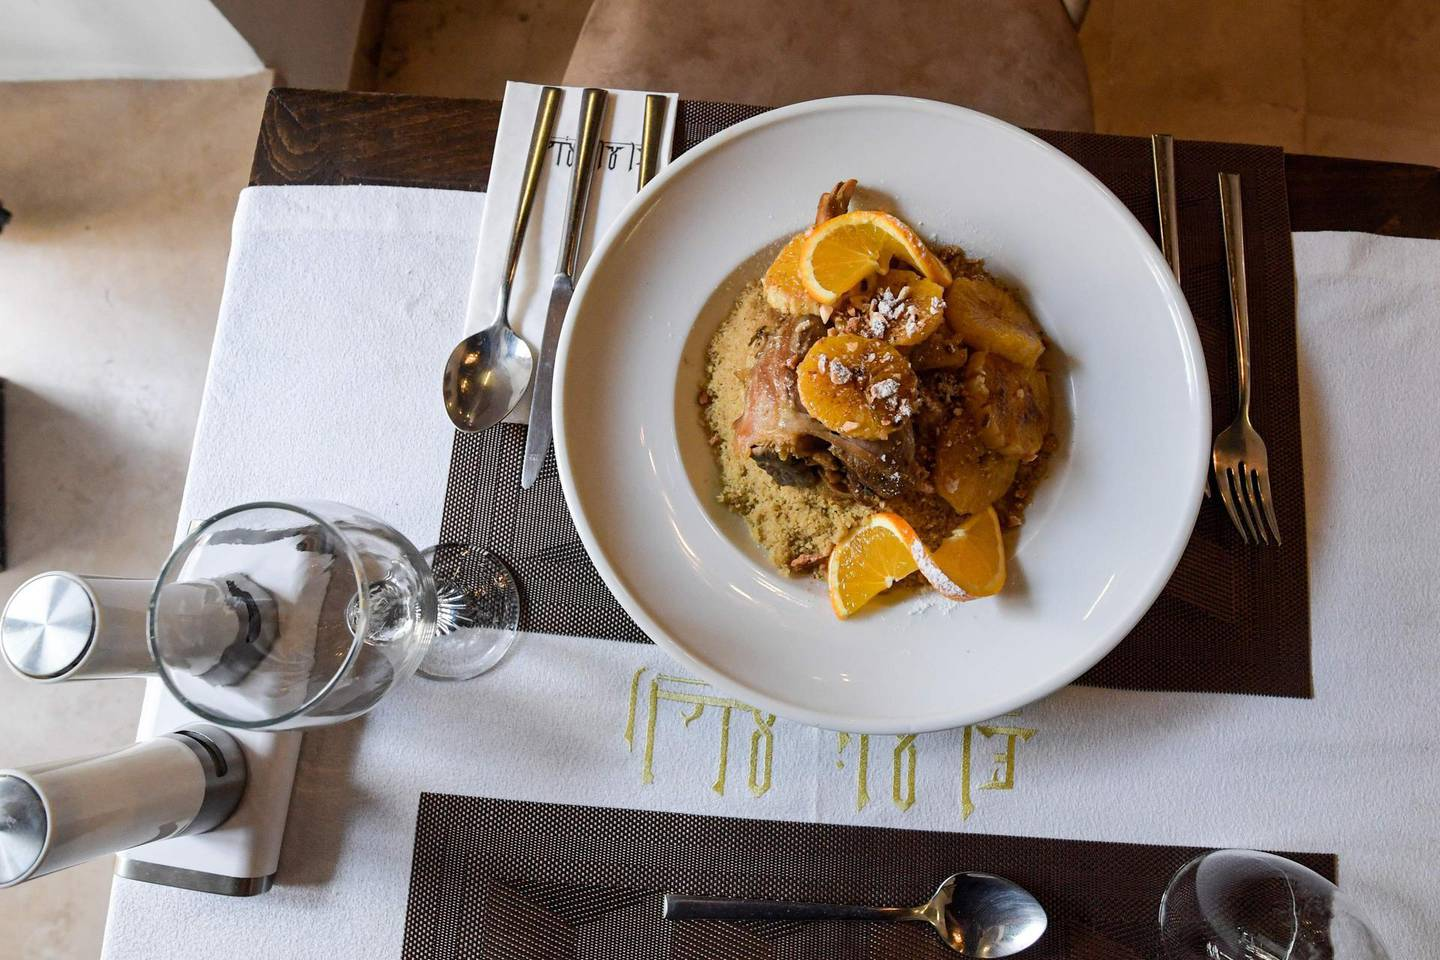 This picture taken on December 16, 2020 shows a view of a dish of lamb and orange couscous prepared by Tunisian chef Taieb Bouhadra, at a restaurant in the Medina (old town) of Tunisia's capital Tunis. Couscous, the Berber dish beloved across northern Africa's Maghreb and Sahel regions, has become a global foodie favourite now found on the shelves of organic supermarkets everywhere. Love it or hate it, but on December 16 the grain staple passed another culinary milestone when the UN cultural organisation honoured it as part of the world's intangible cultural heritage. / AFP / Fethi Belaid